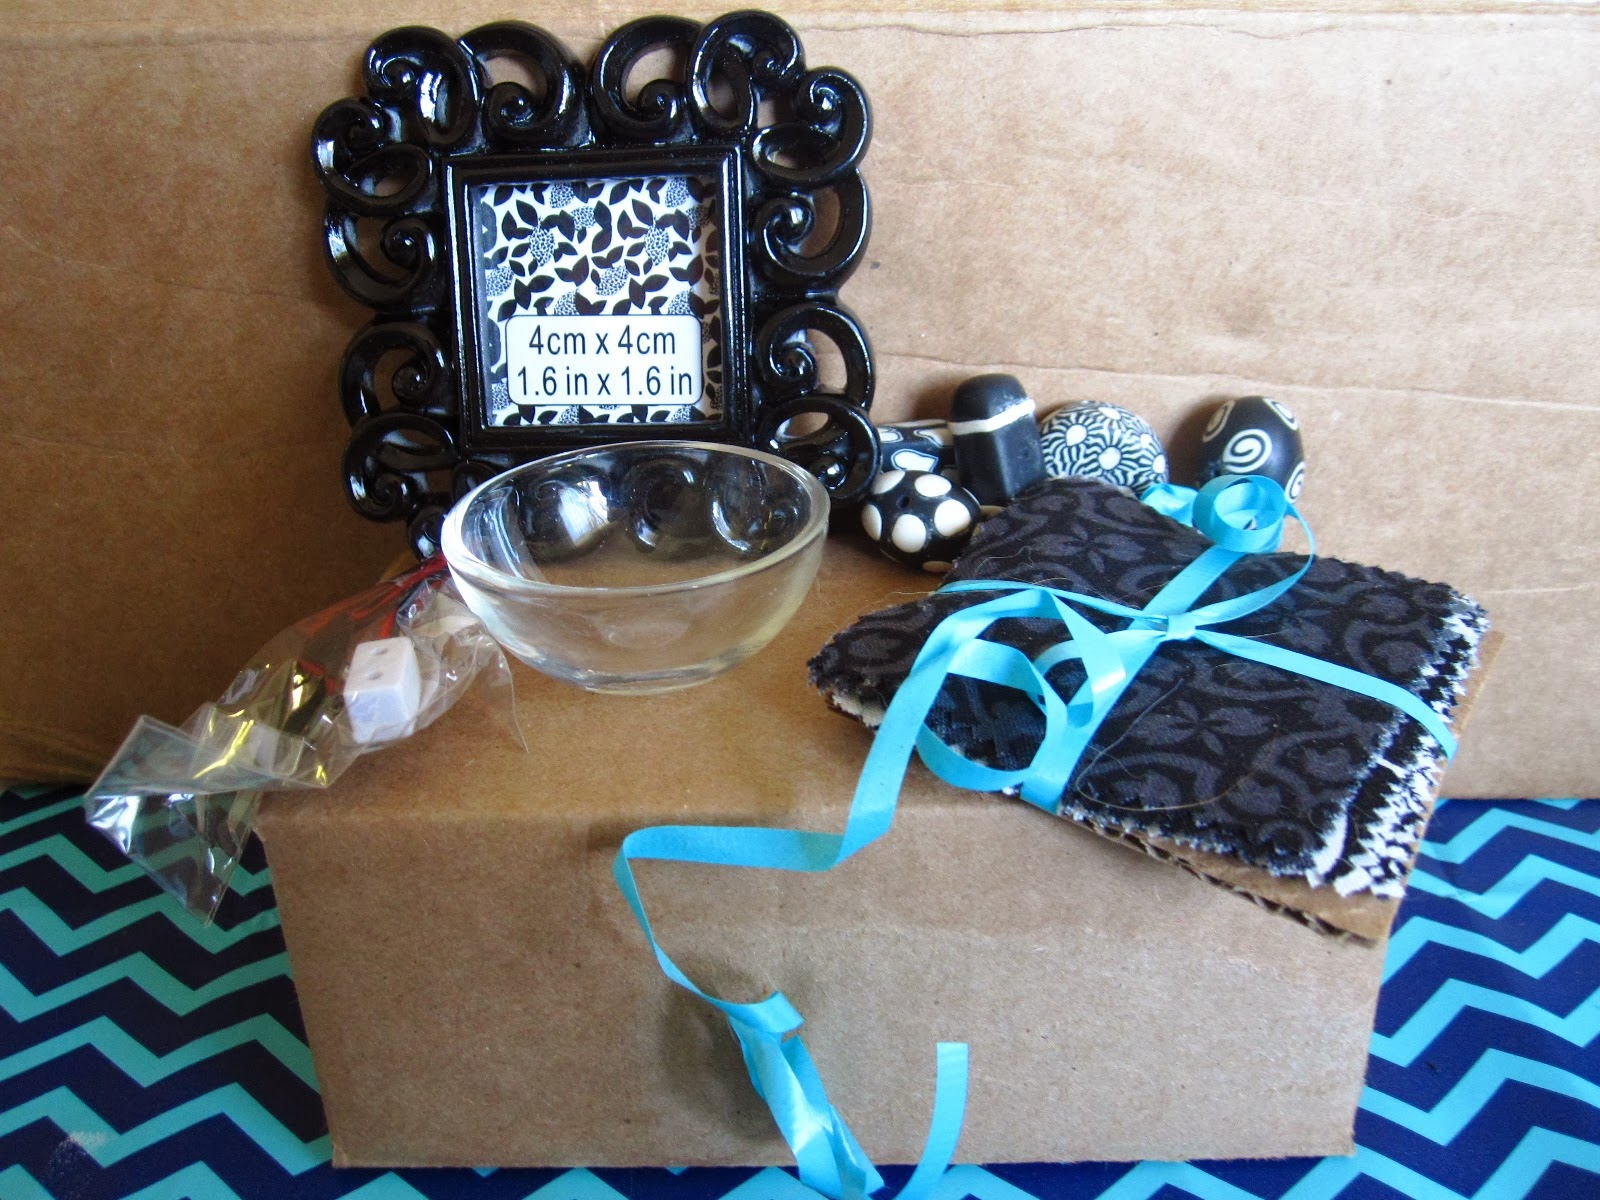 Black and white modern miniature picture frame, bowl, beads, fabric pieces and battery adapter